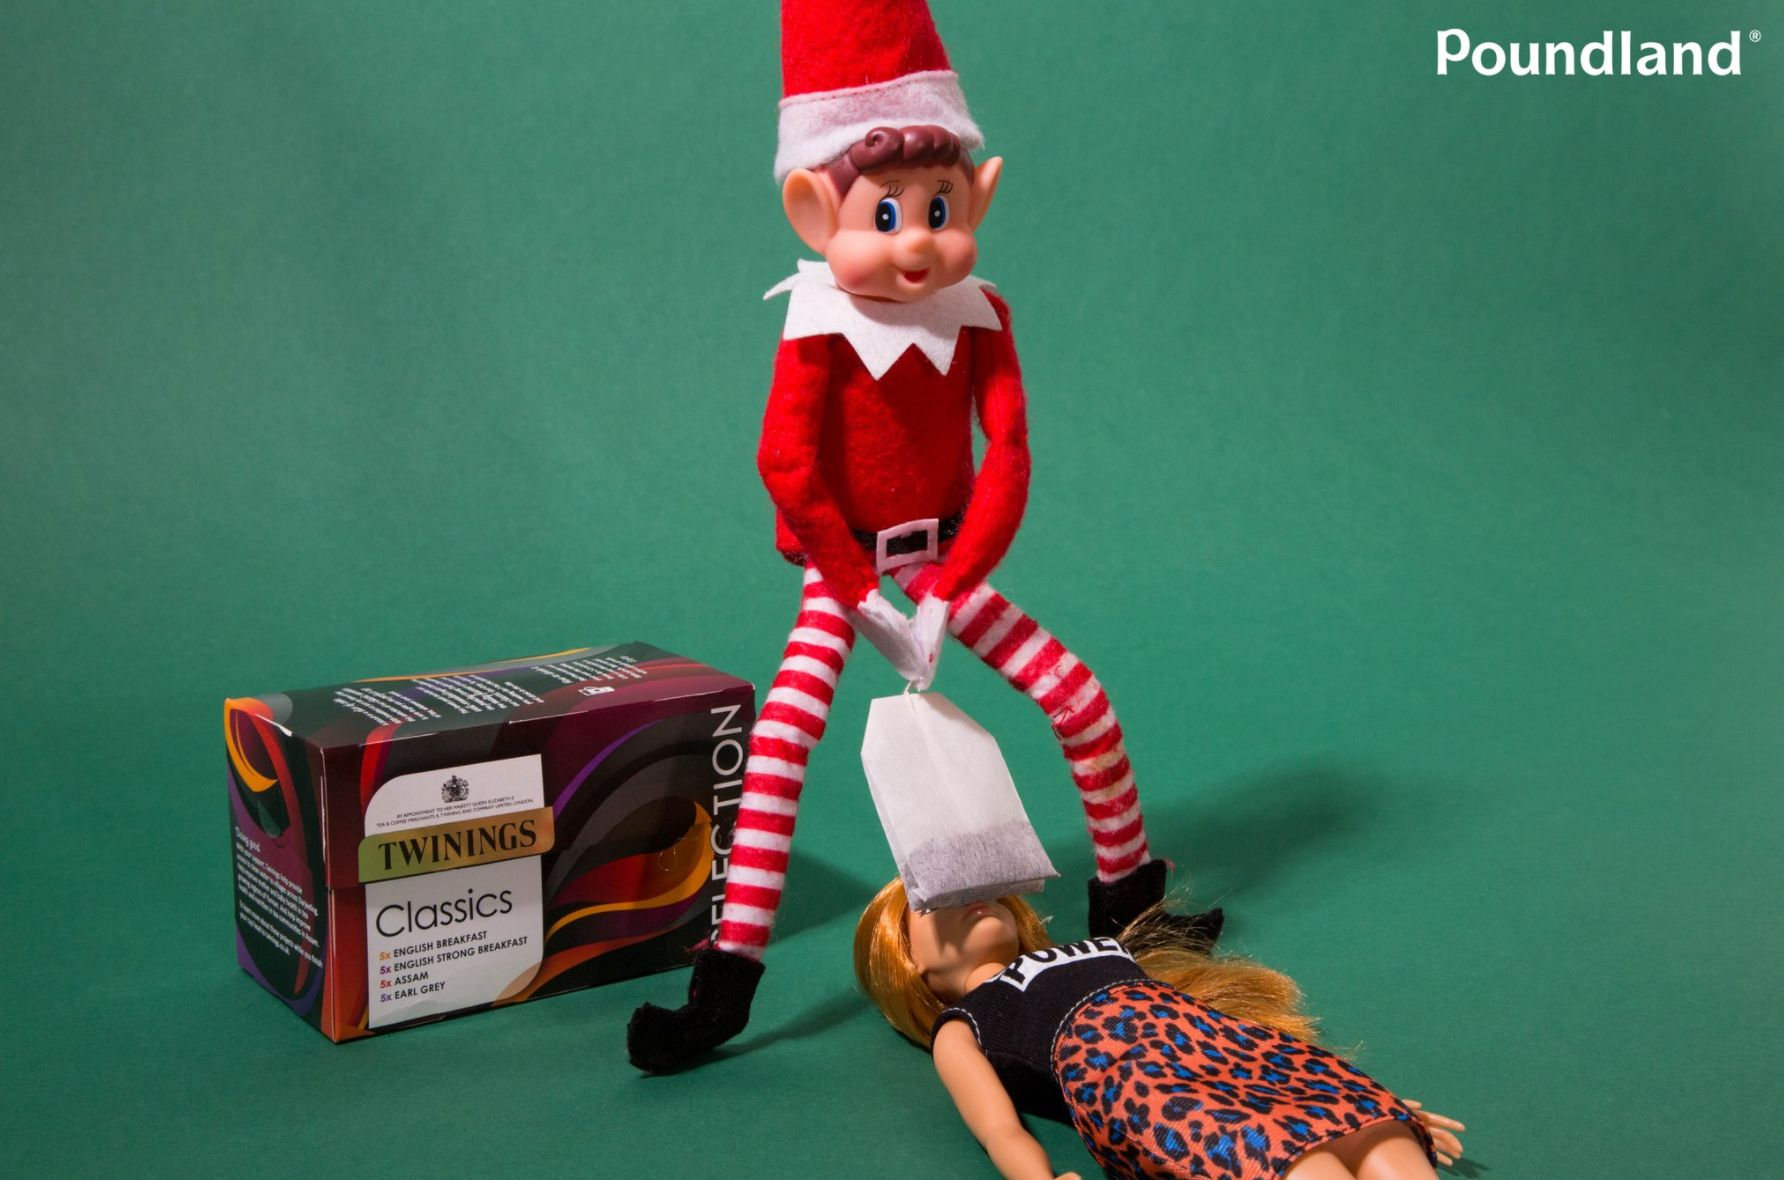 Poundland's NSFW Elf Advert Depicting Sex Move Divides The